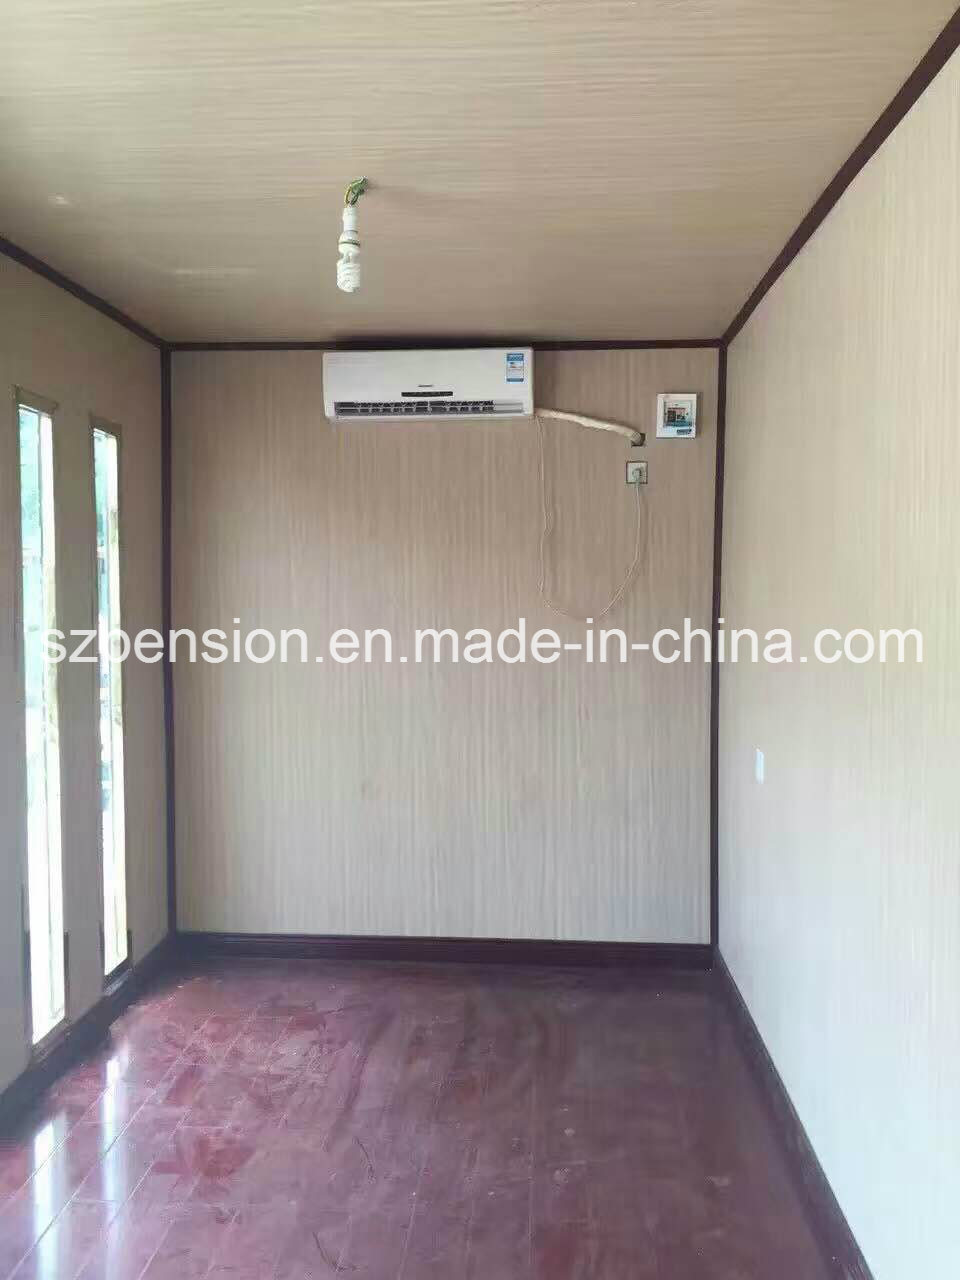 Leisure Life Modern Modified Container Prefabricated/Prefab Sunshine Room/House